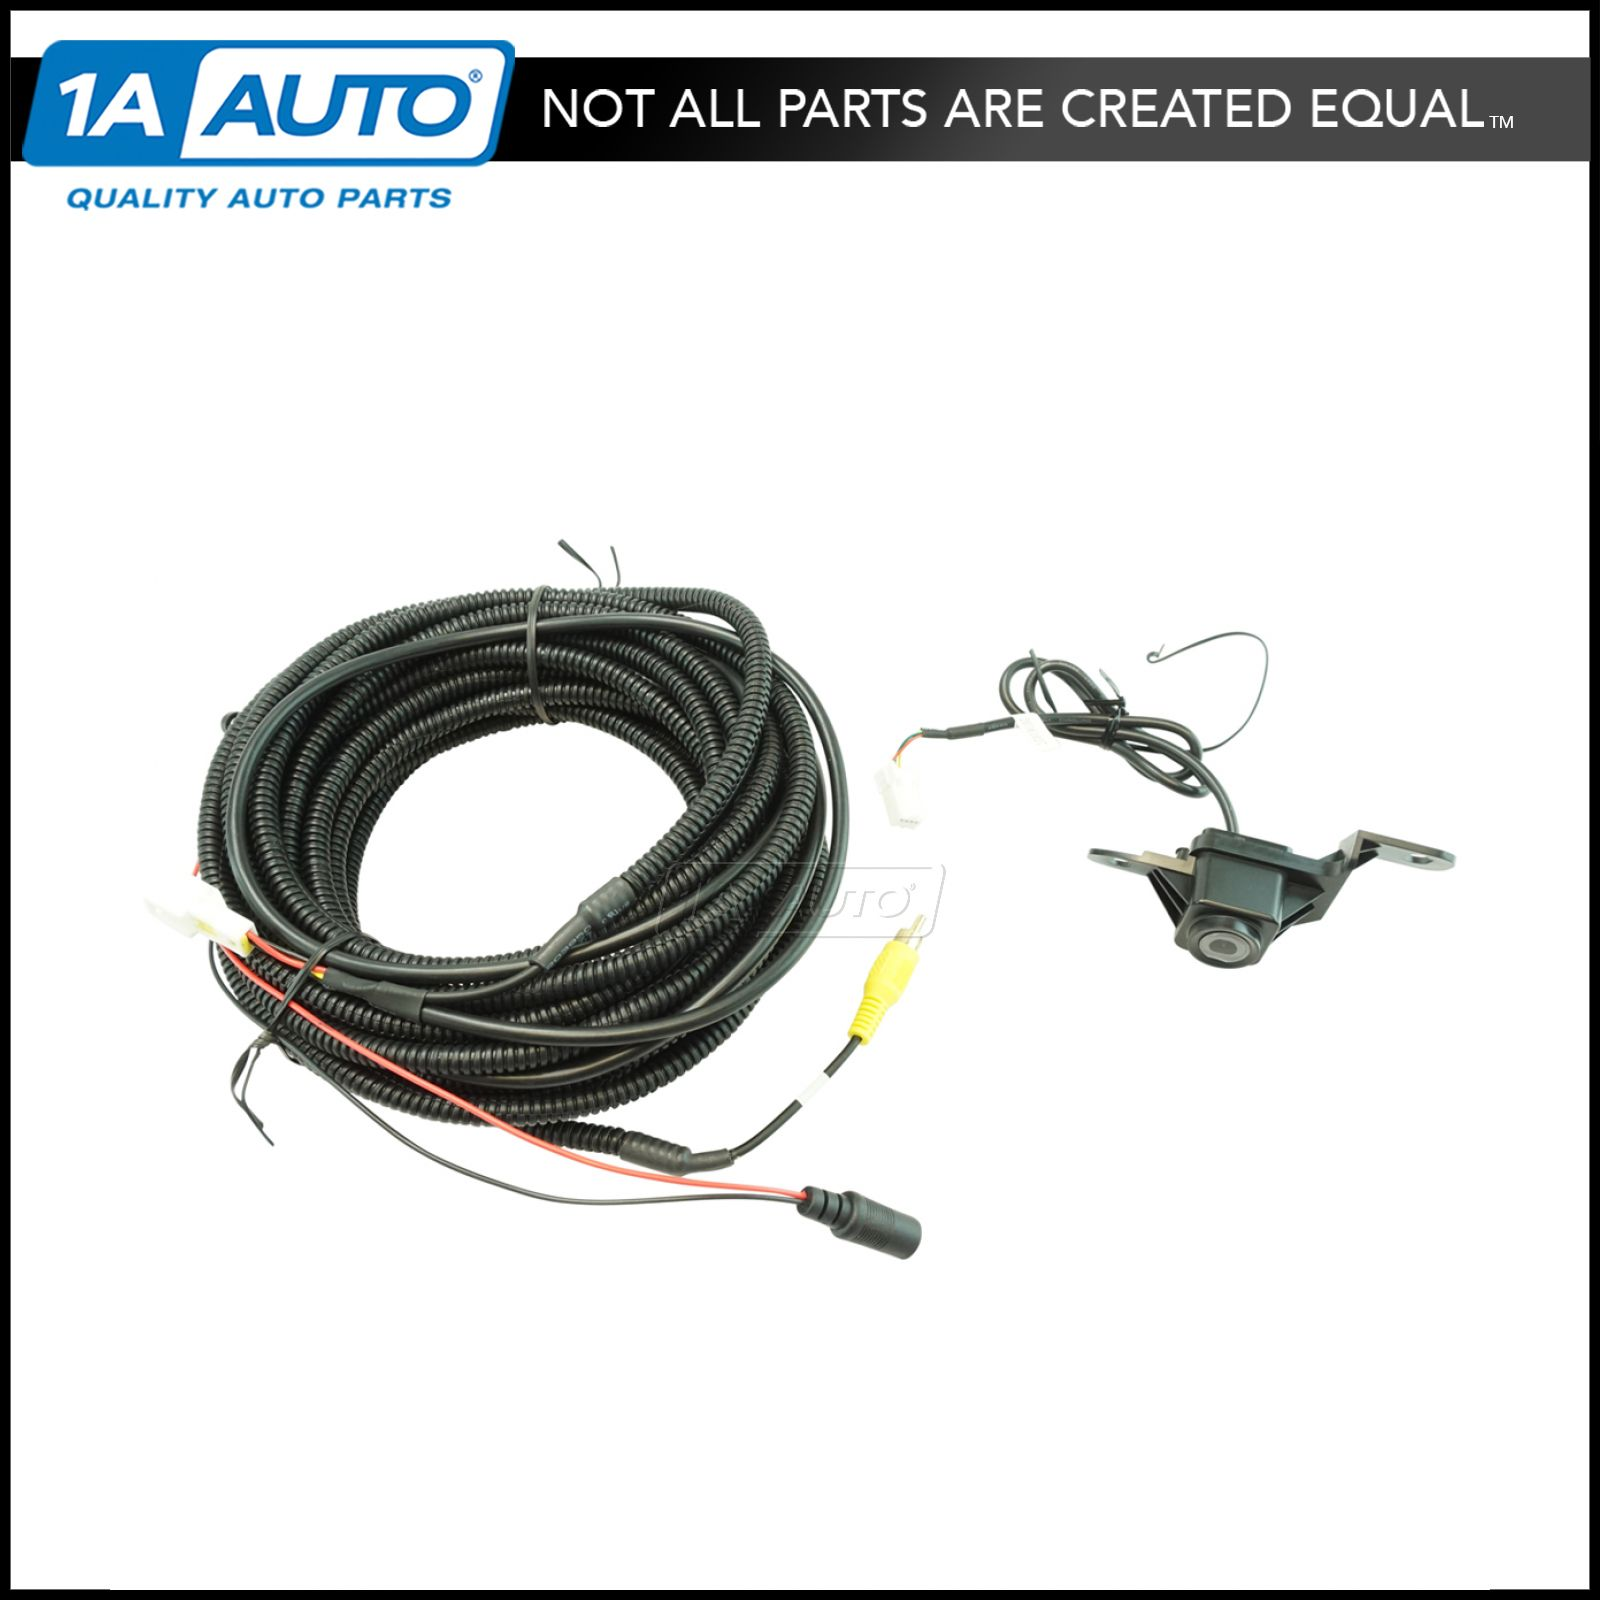 Rear View Camera Wiring Diagram Wiring Harness Wiring Diagram